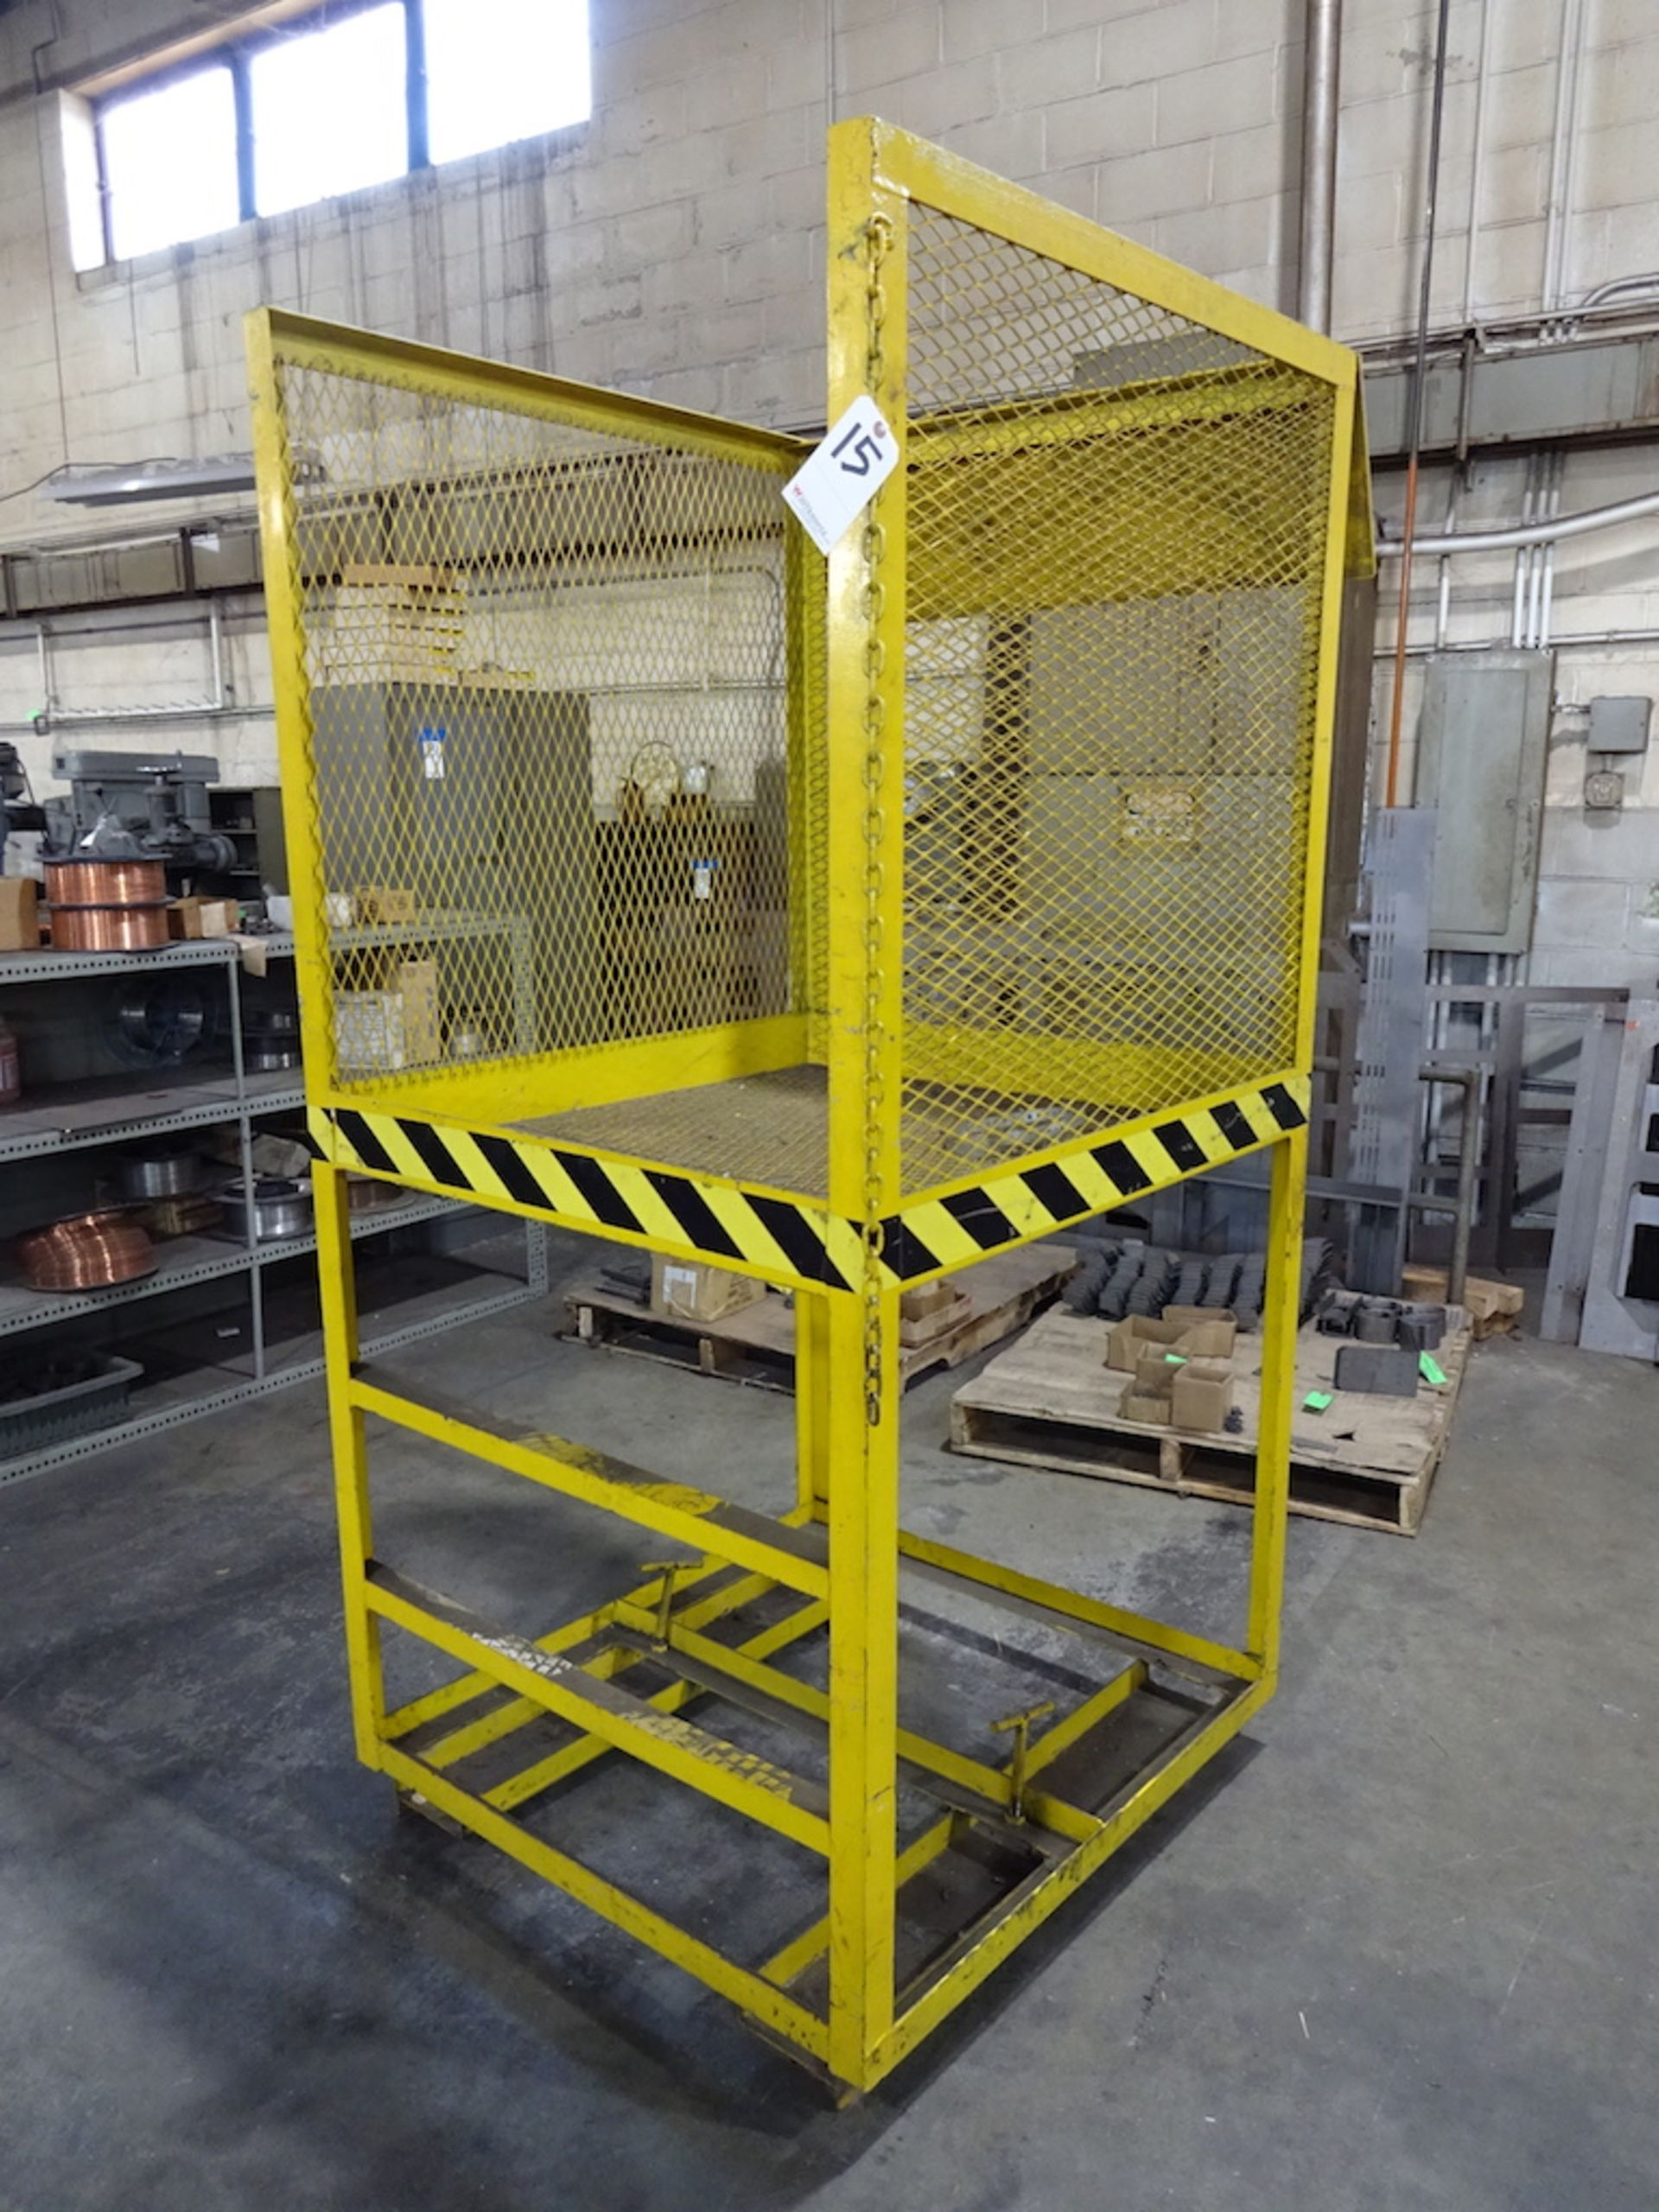 Lot 15 - 38 in. x 41 in. Forklift Work Platform